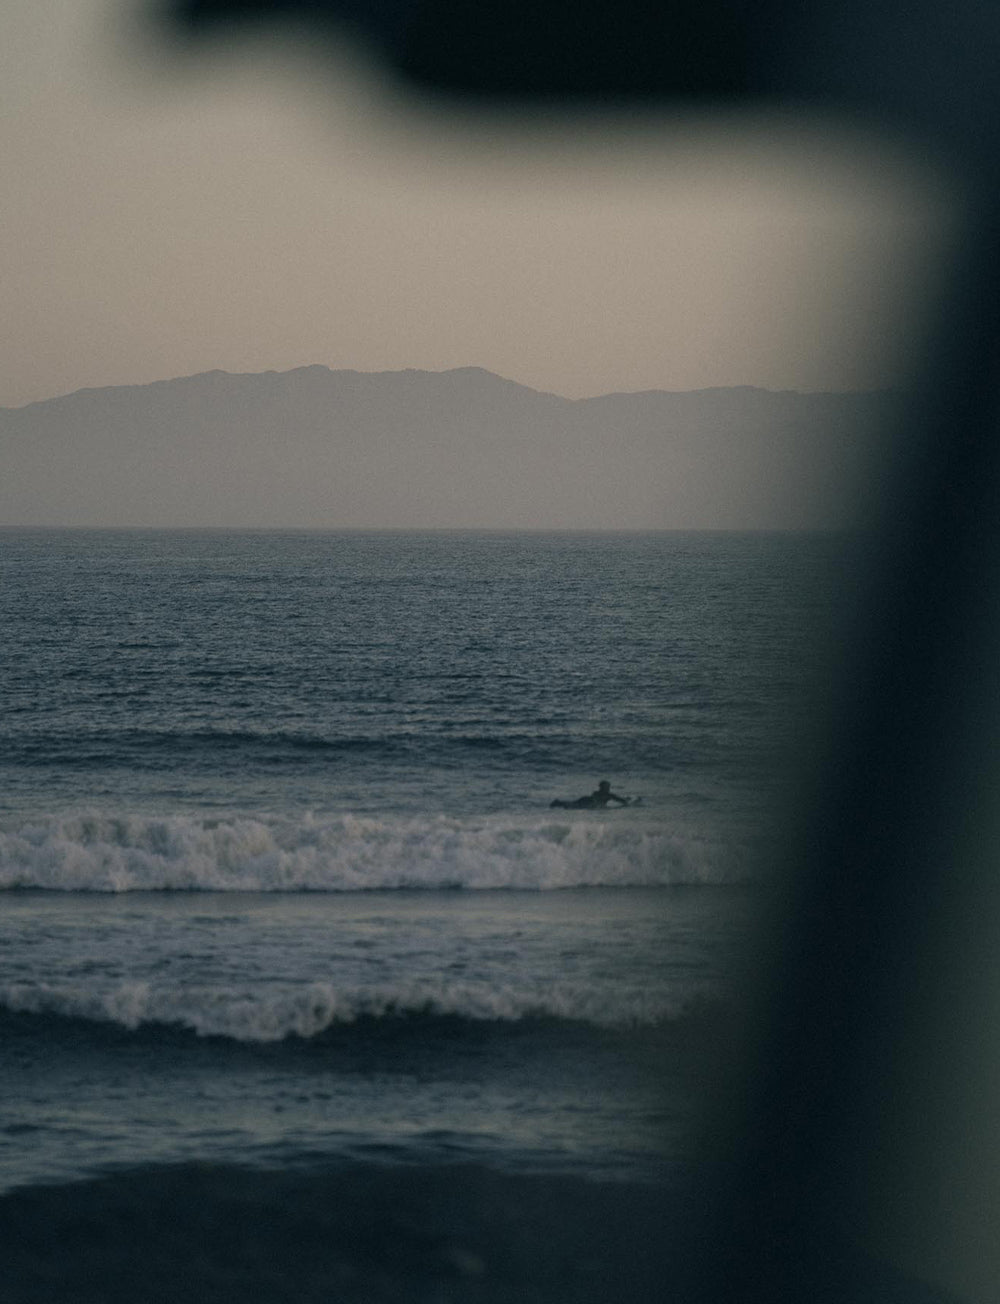 A lone surfer paddles out towards the incoming swell, the sun has set with the silhouette of mountains in the background.